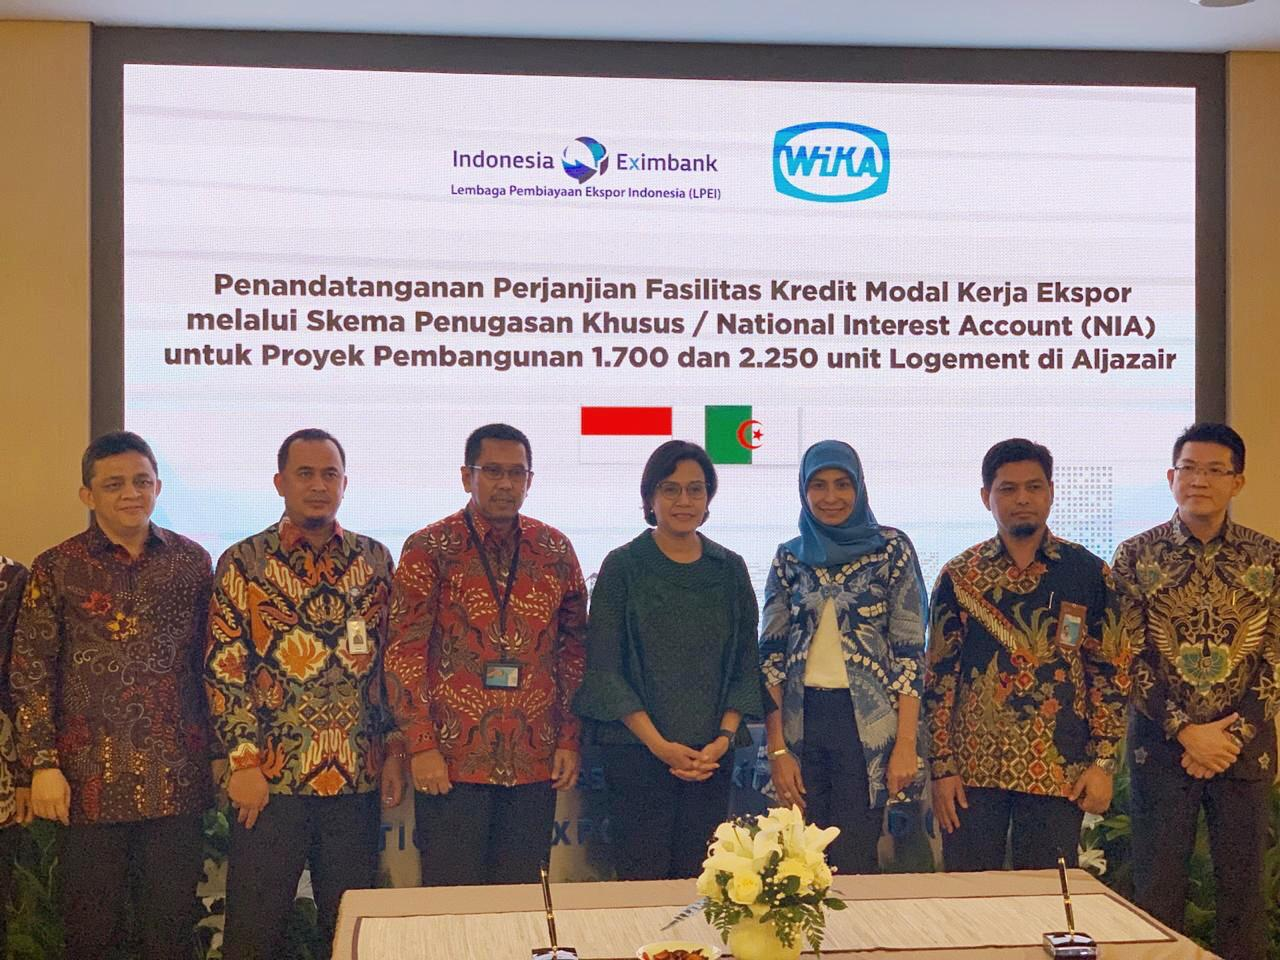 Eximbank - WIKA Agrees on Export Financing Cooperation for Foreign Project Development